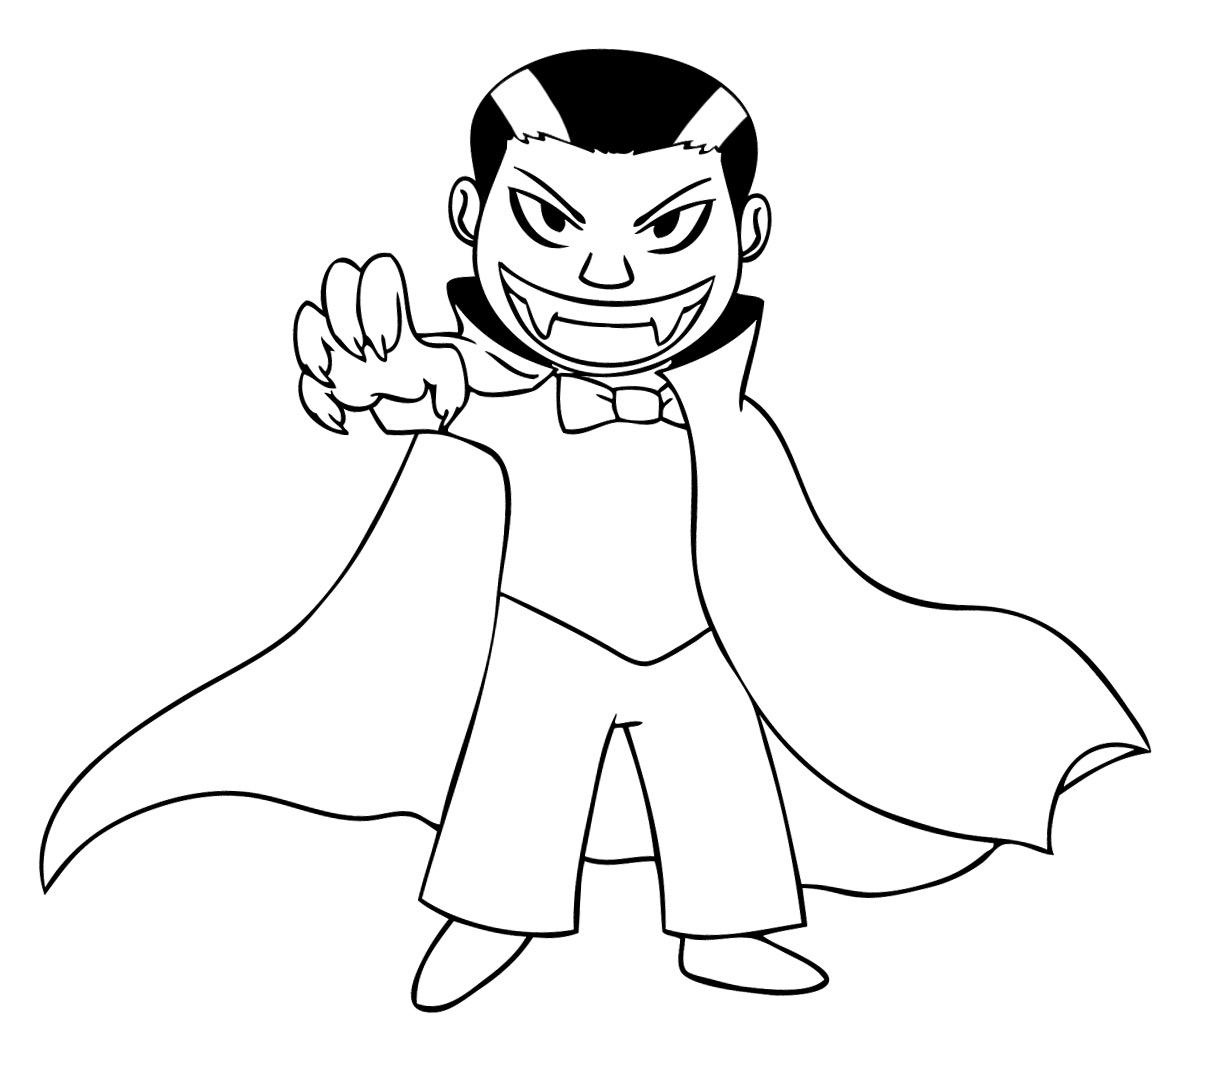 vampire coloring free vampire coloring pages to print vampire coloring